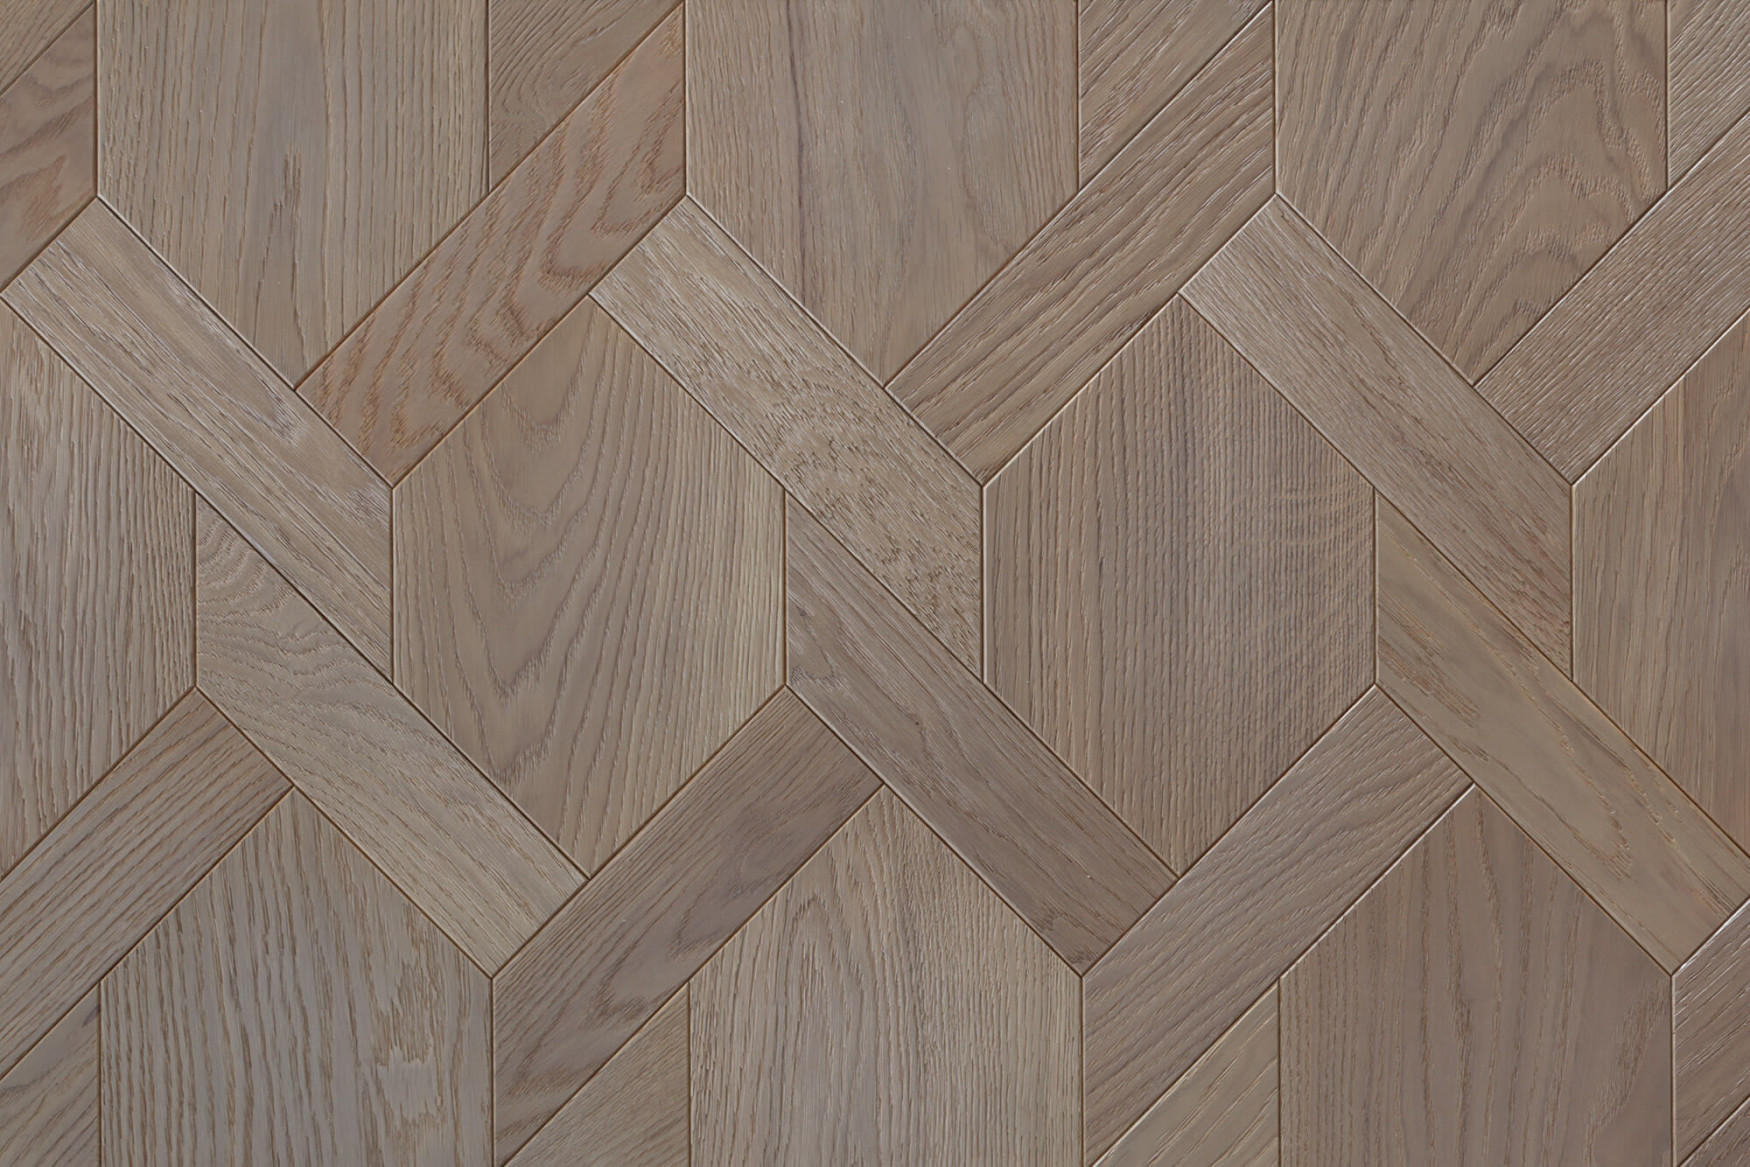 Element7-Parquet-BerluttiMansionWeave_AJ_883_109